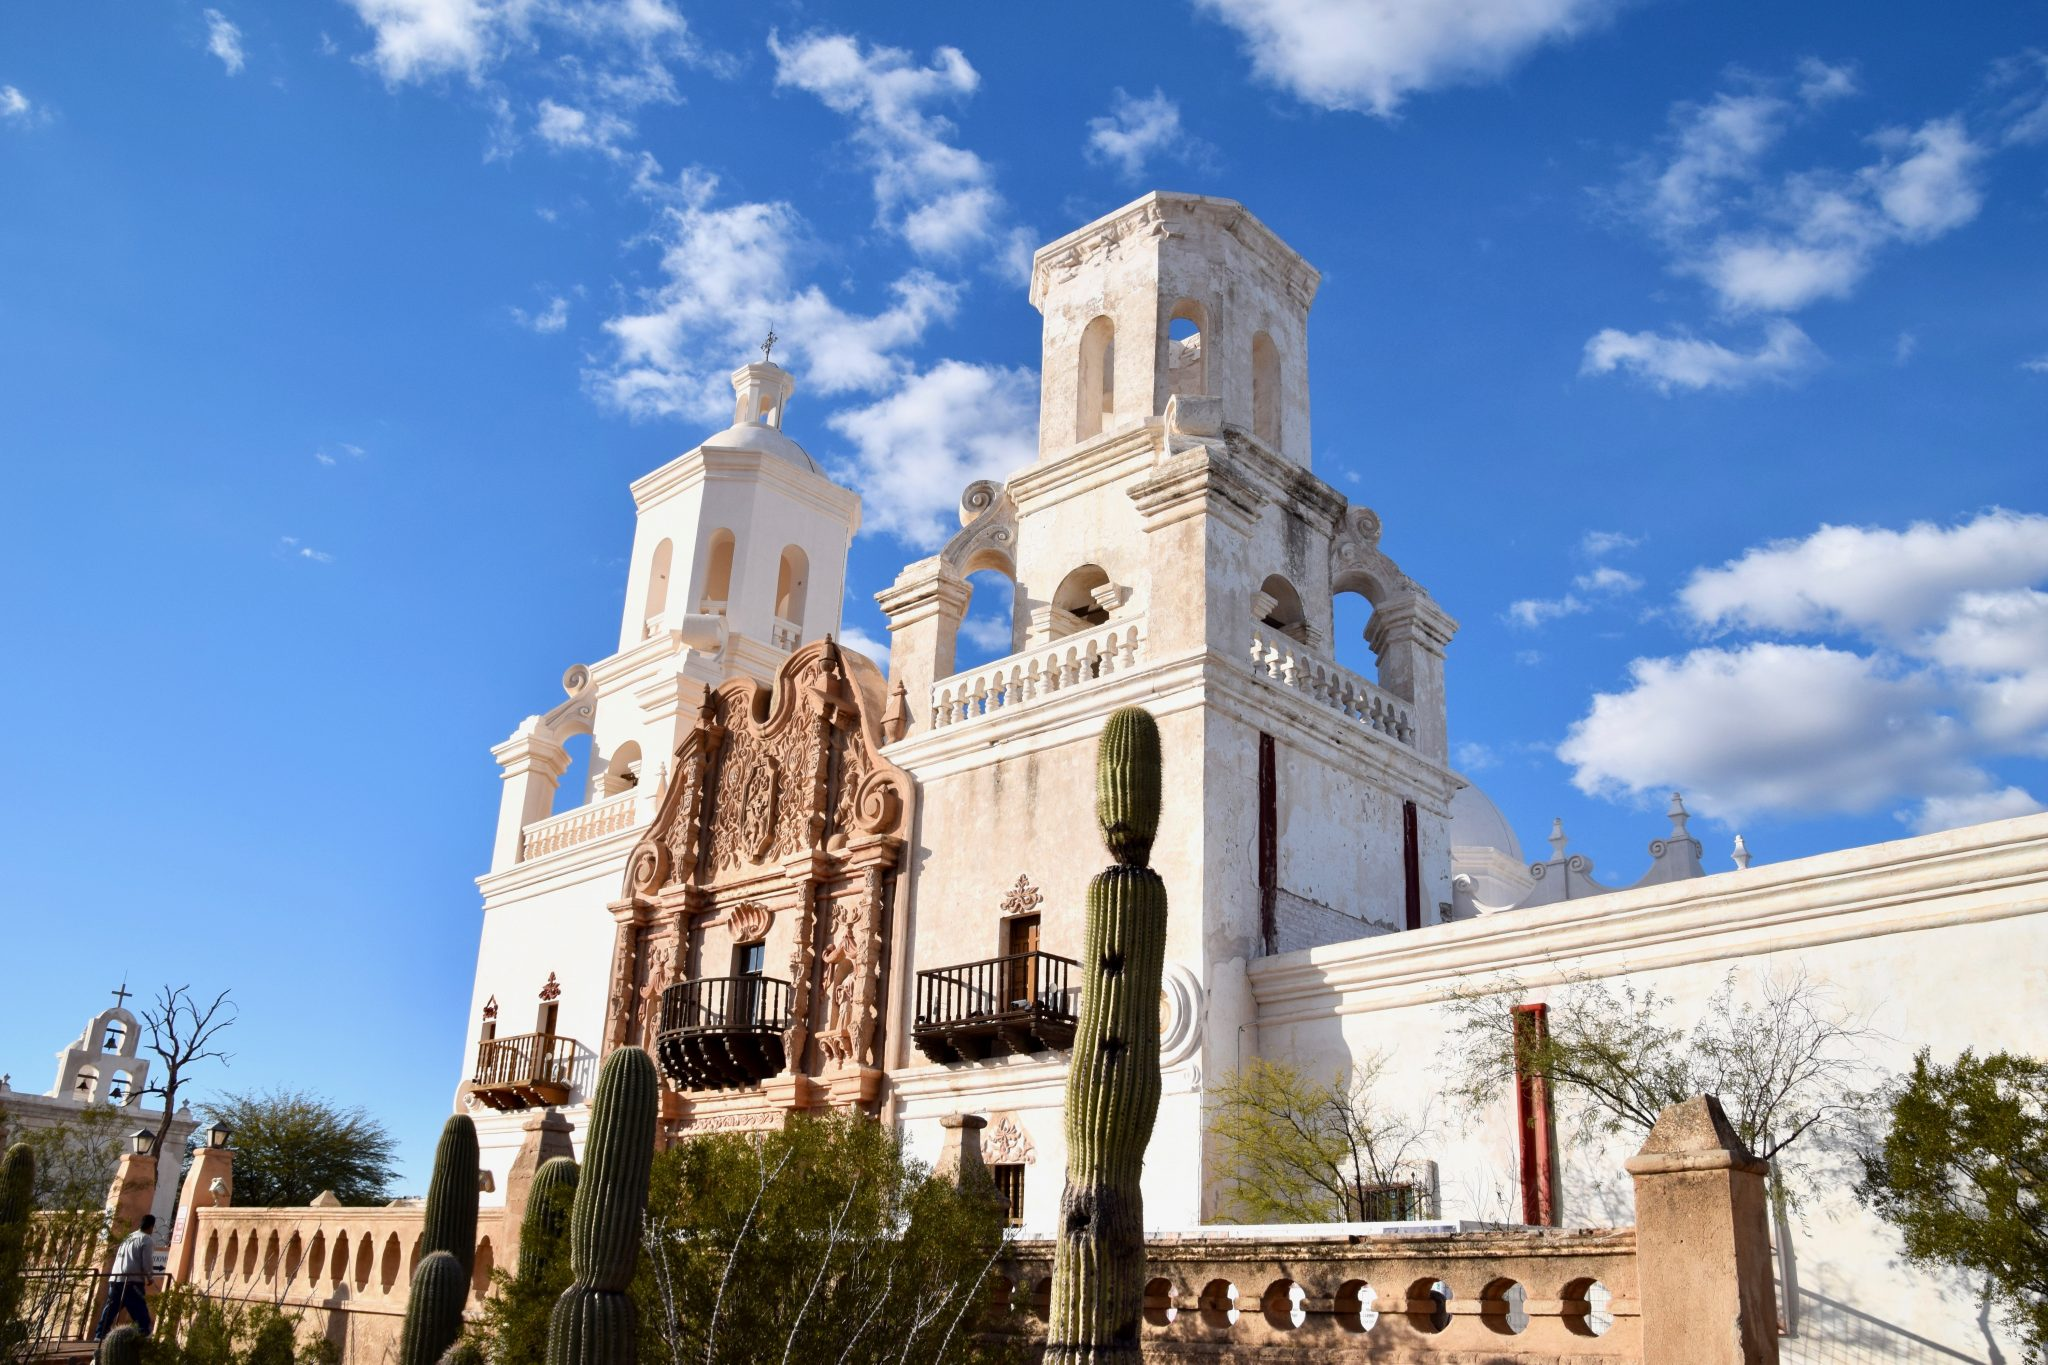 Front side angle of Mission San Xavier del Bac